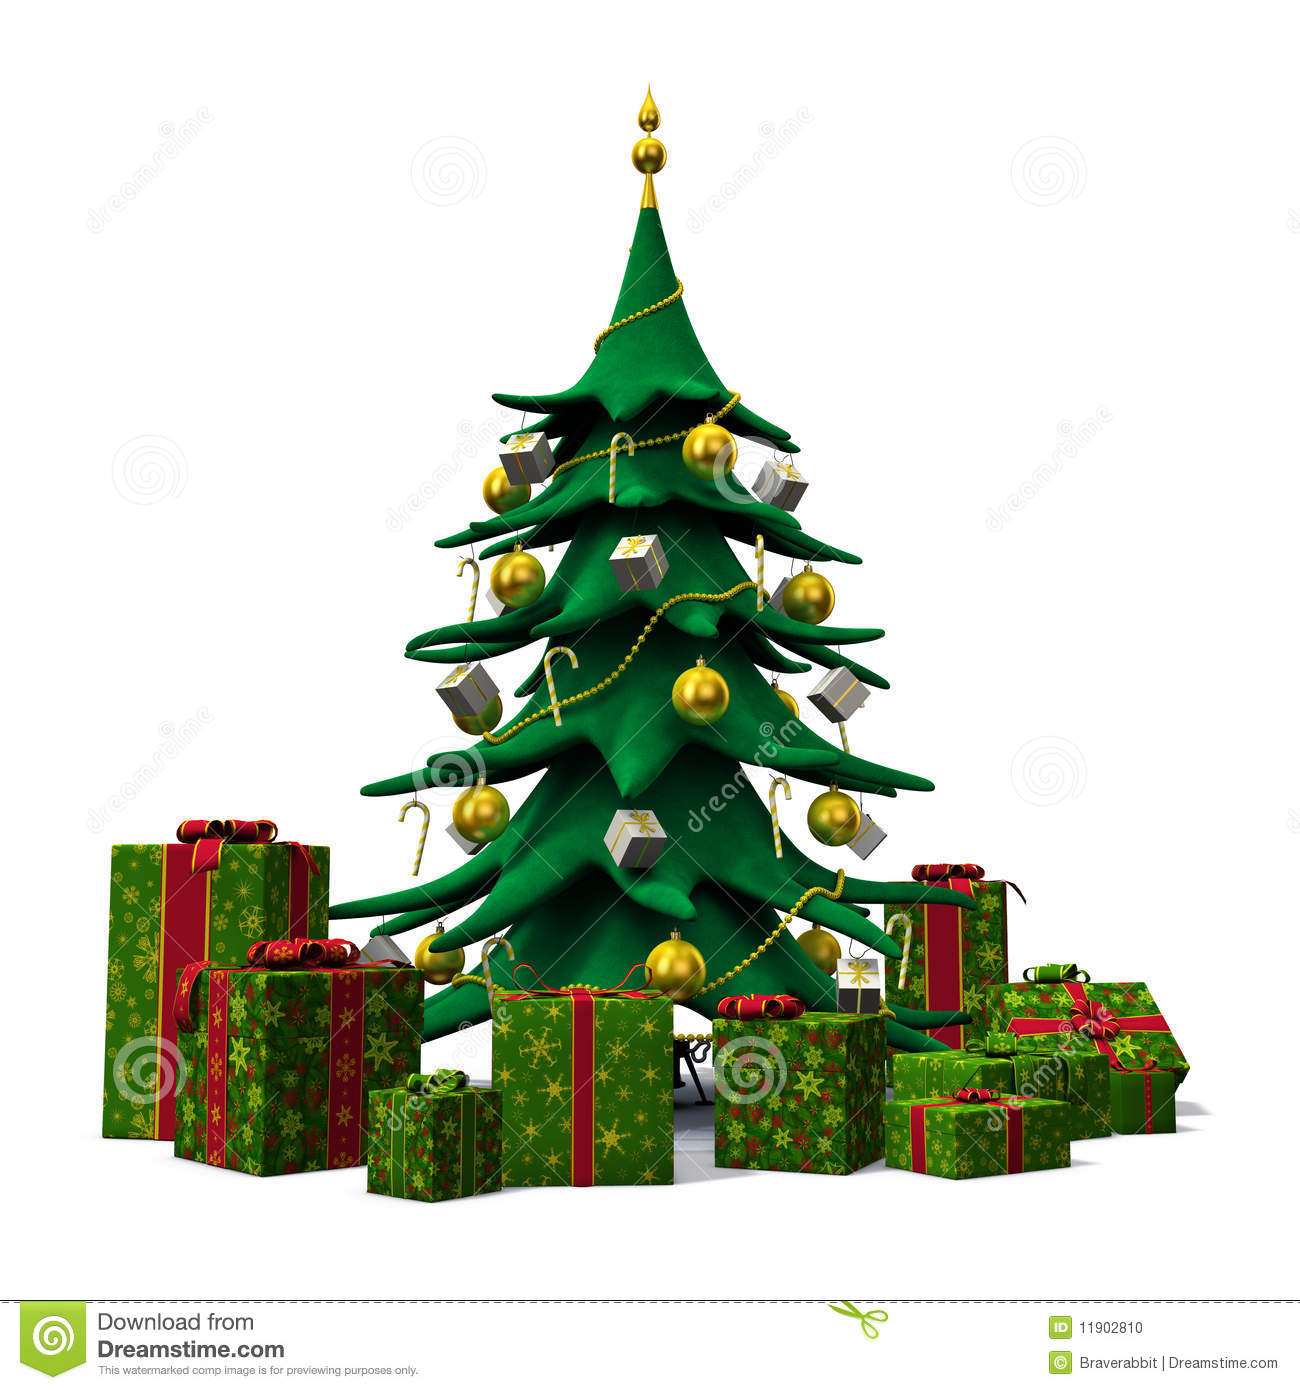 Real christmas trees with presents - Christmas Tree Decorated Gold With Green Presents